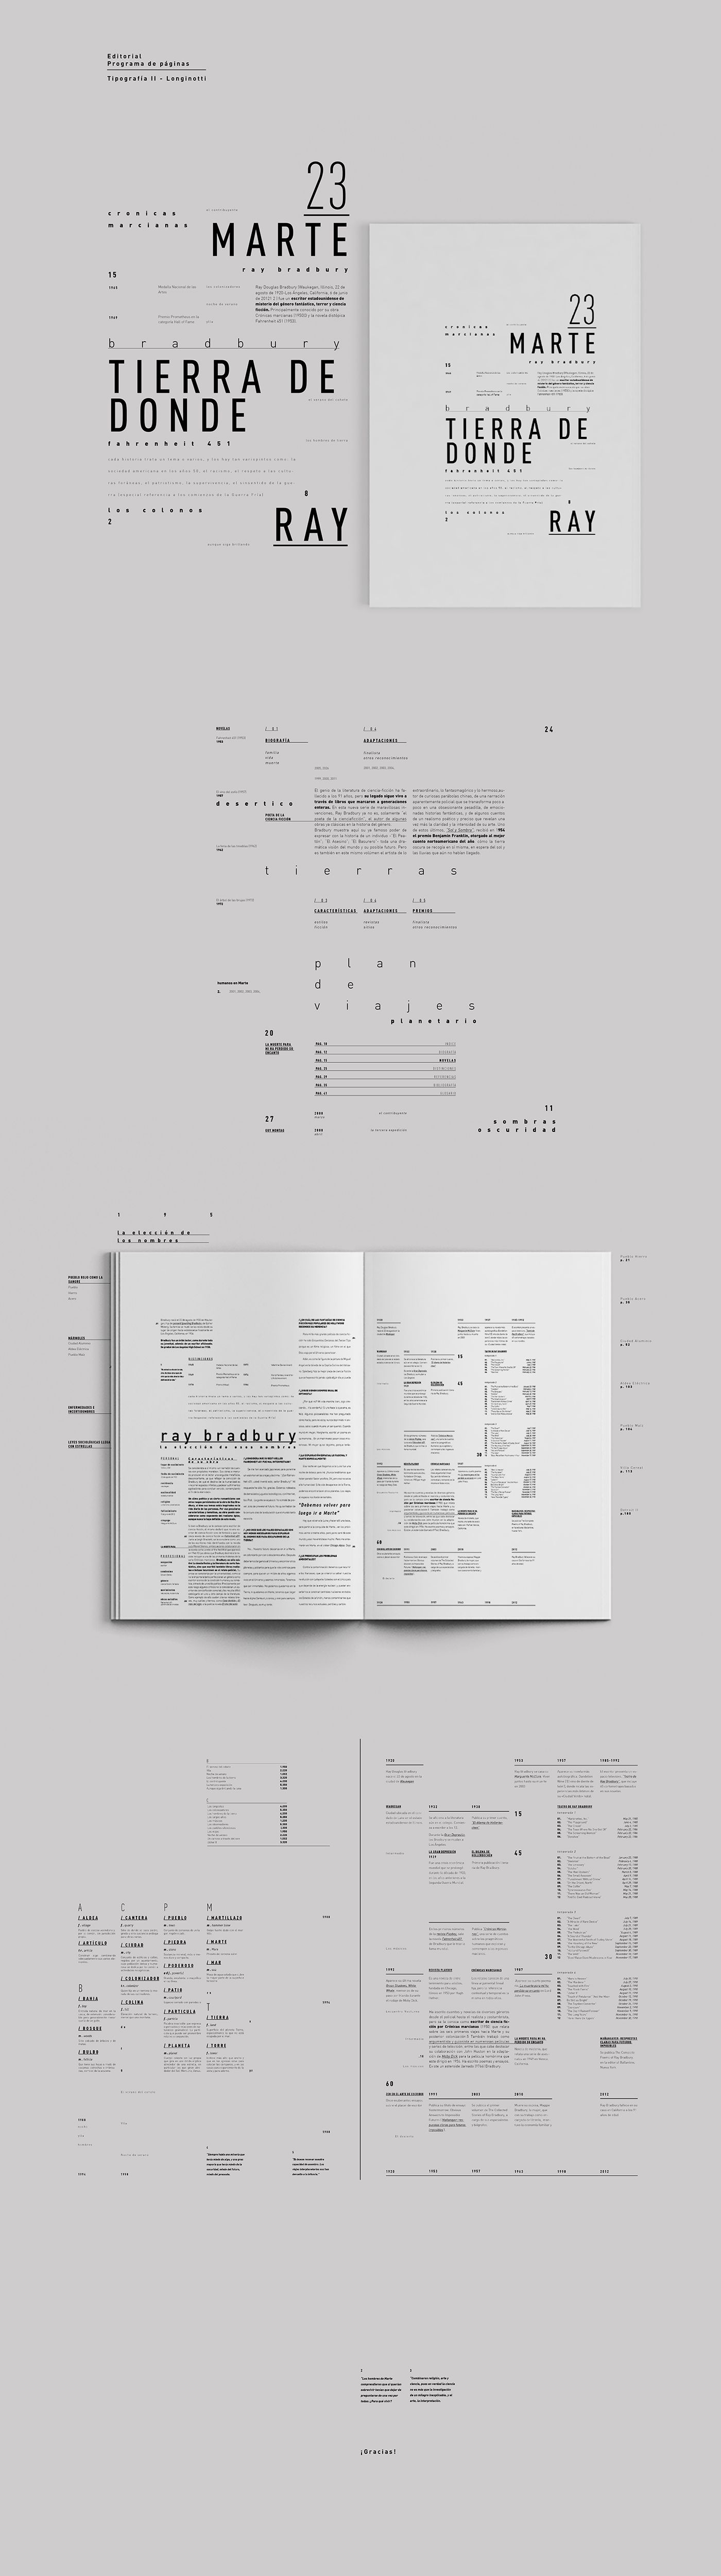 Editorial / programa de páginas on Behance | Gráficas | Pinterest ...